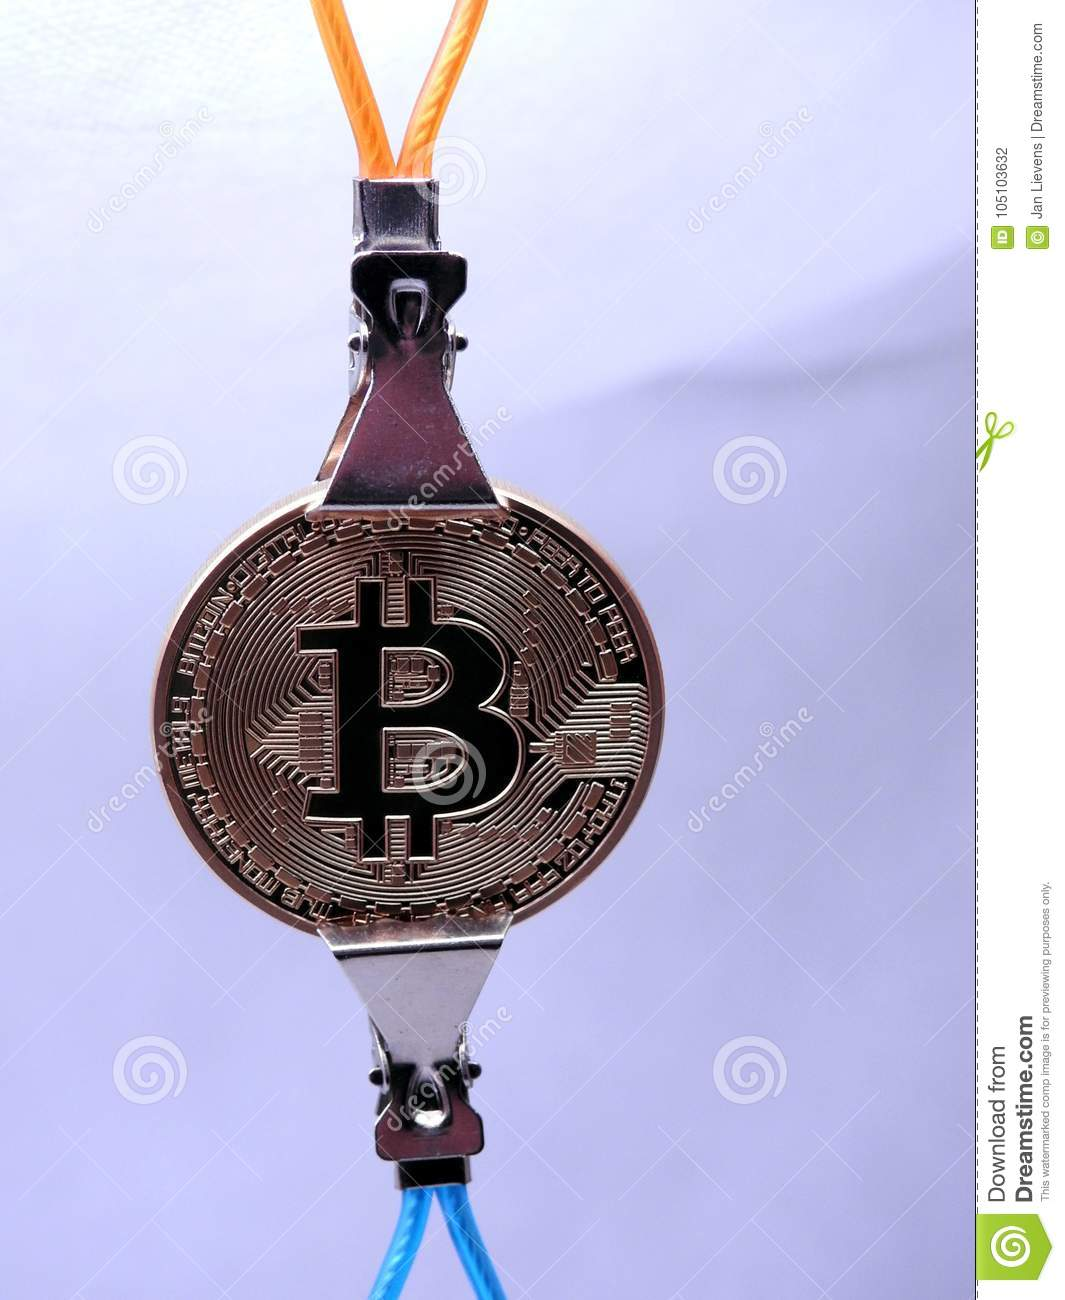 Bitcoin Hanging On Two Metal Clips Stock Photo - Image of